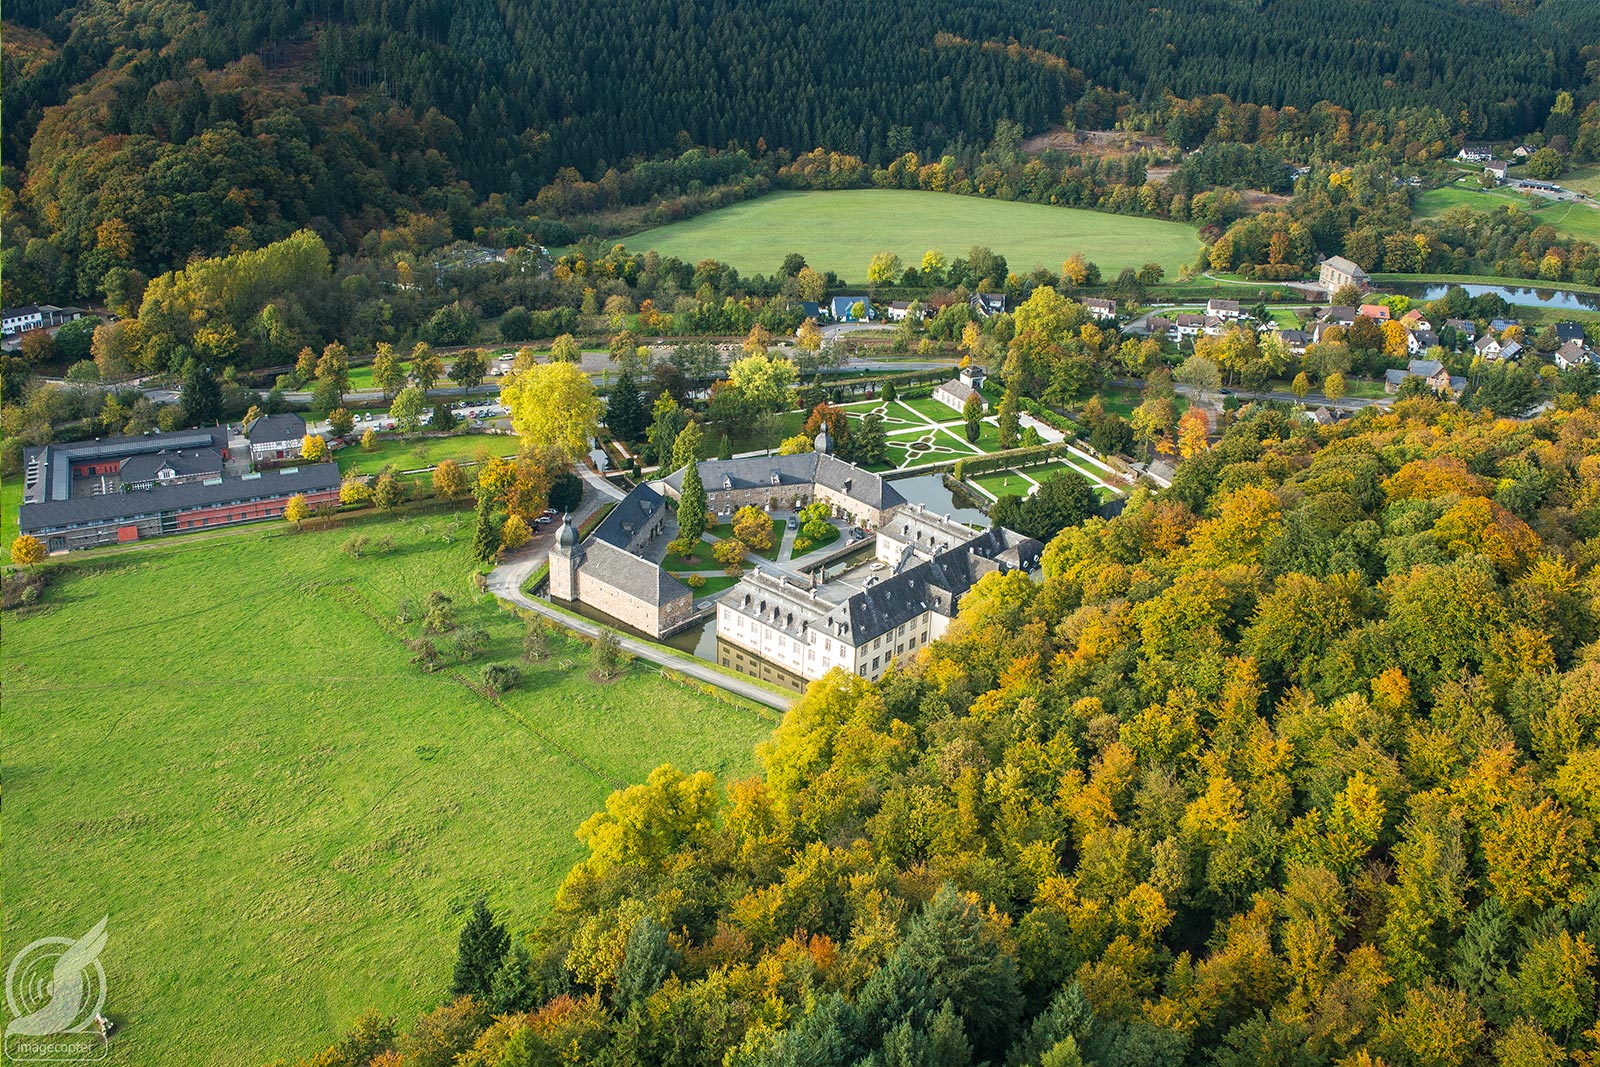 Aerial view of Castle Ehreshoven from above